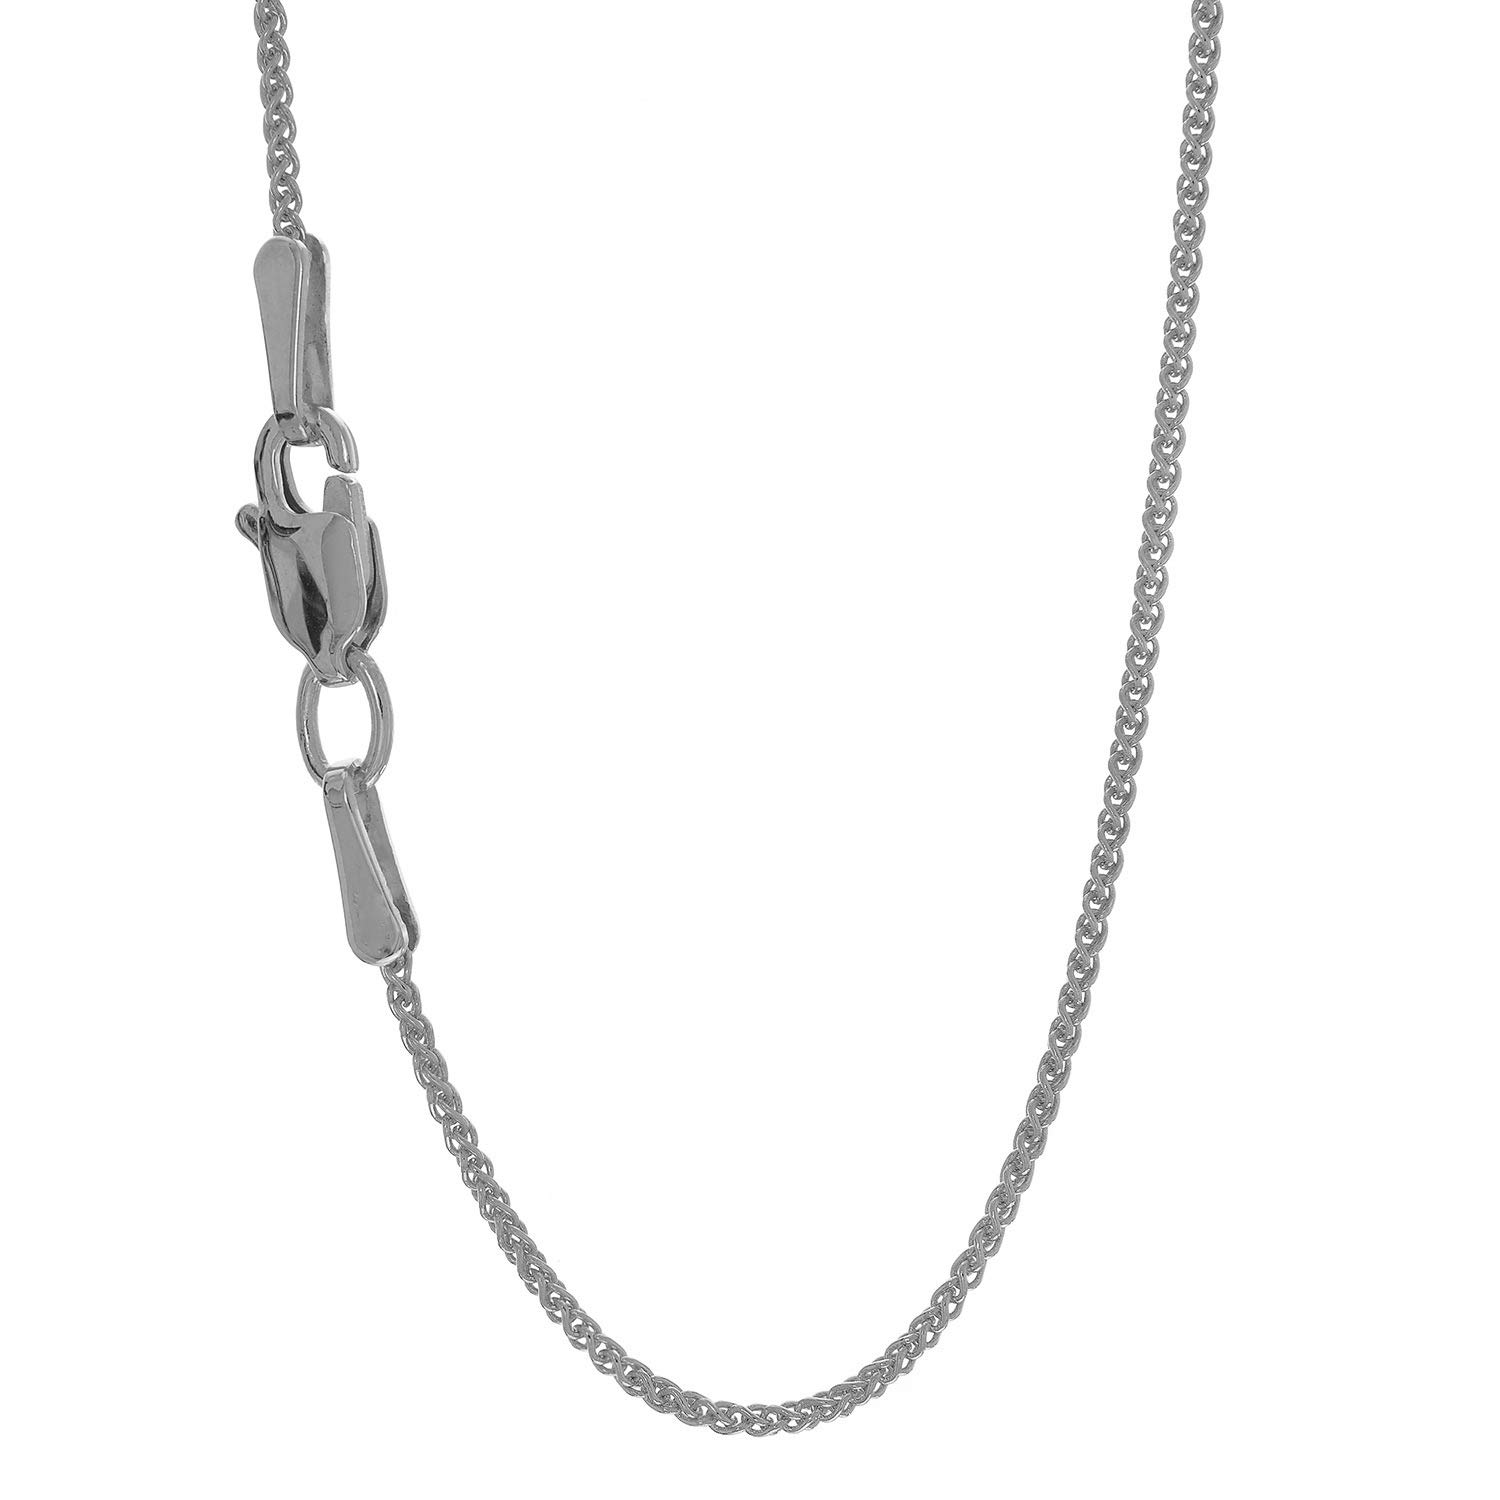 JewelStop 14k Solid White Gold 1.1 mm Spiga Wheat Chain Necklace, Lobster Claw Clasp - 18'', 2.2gr.